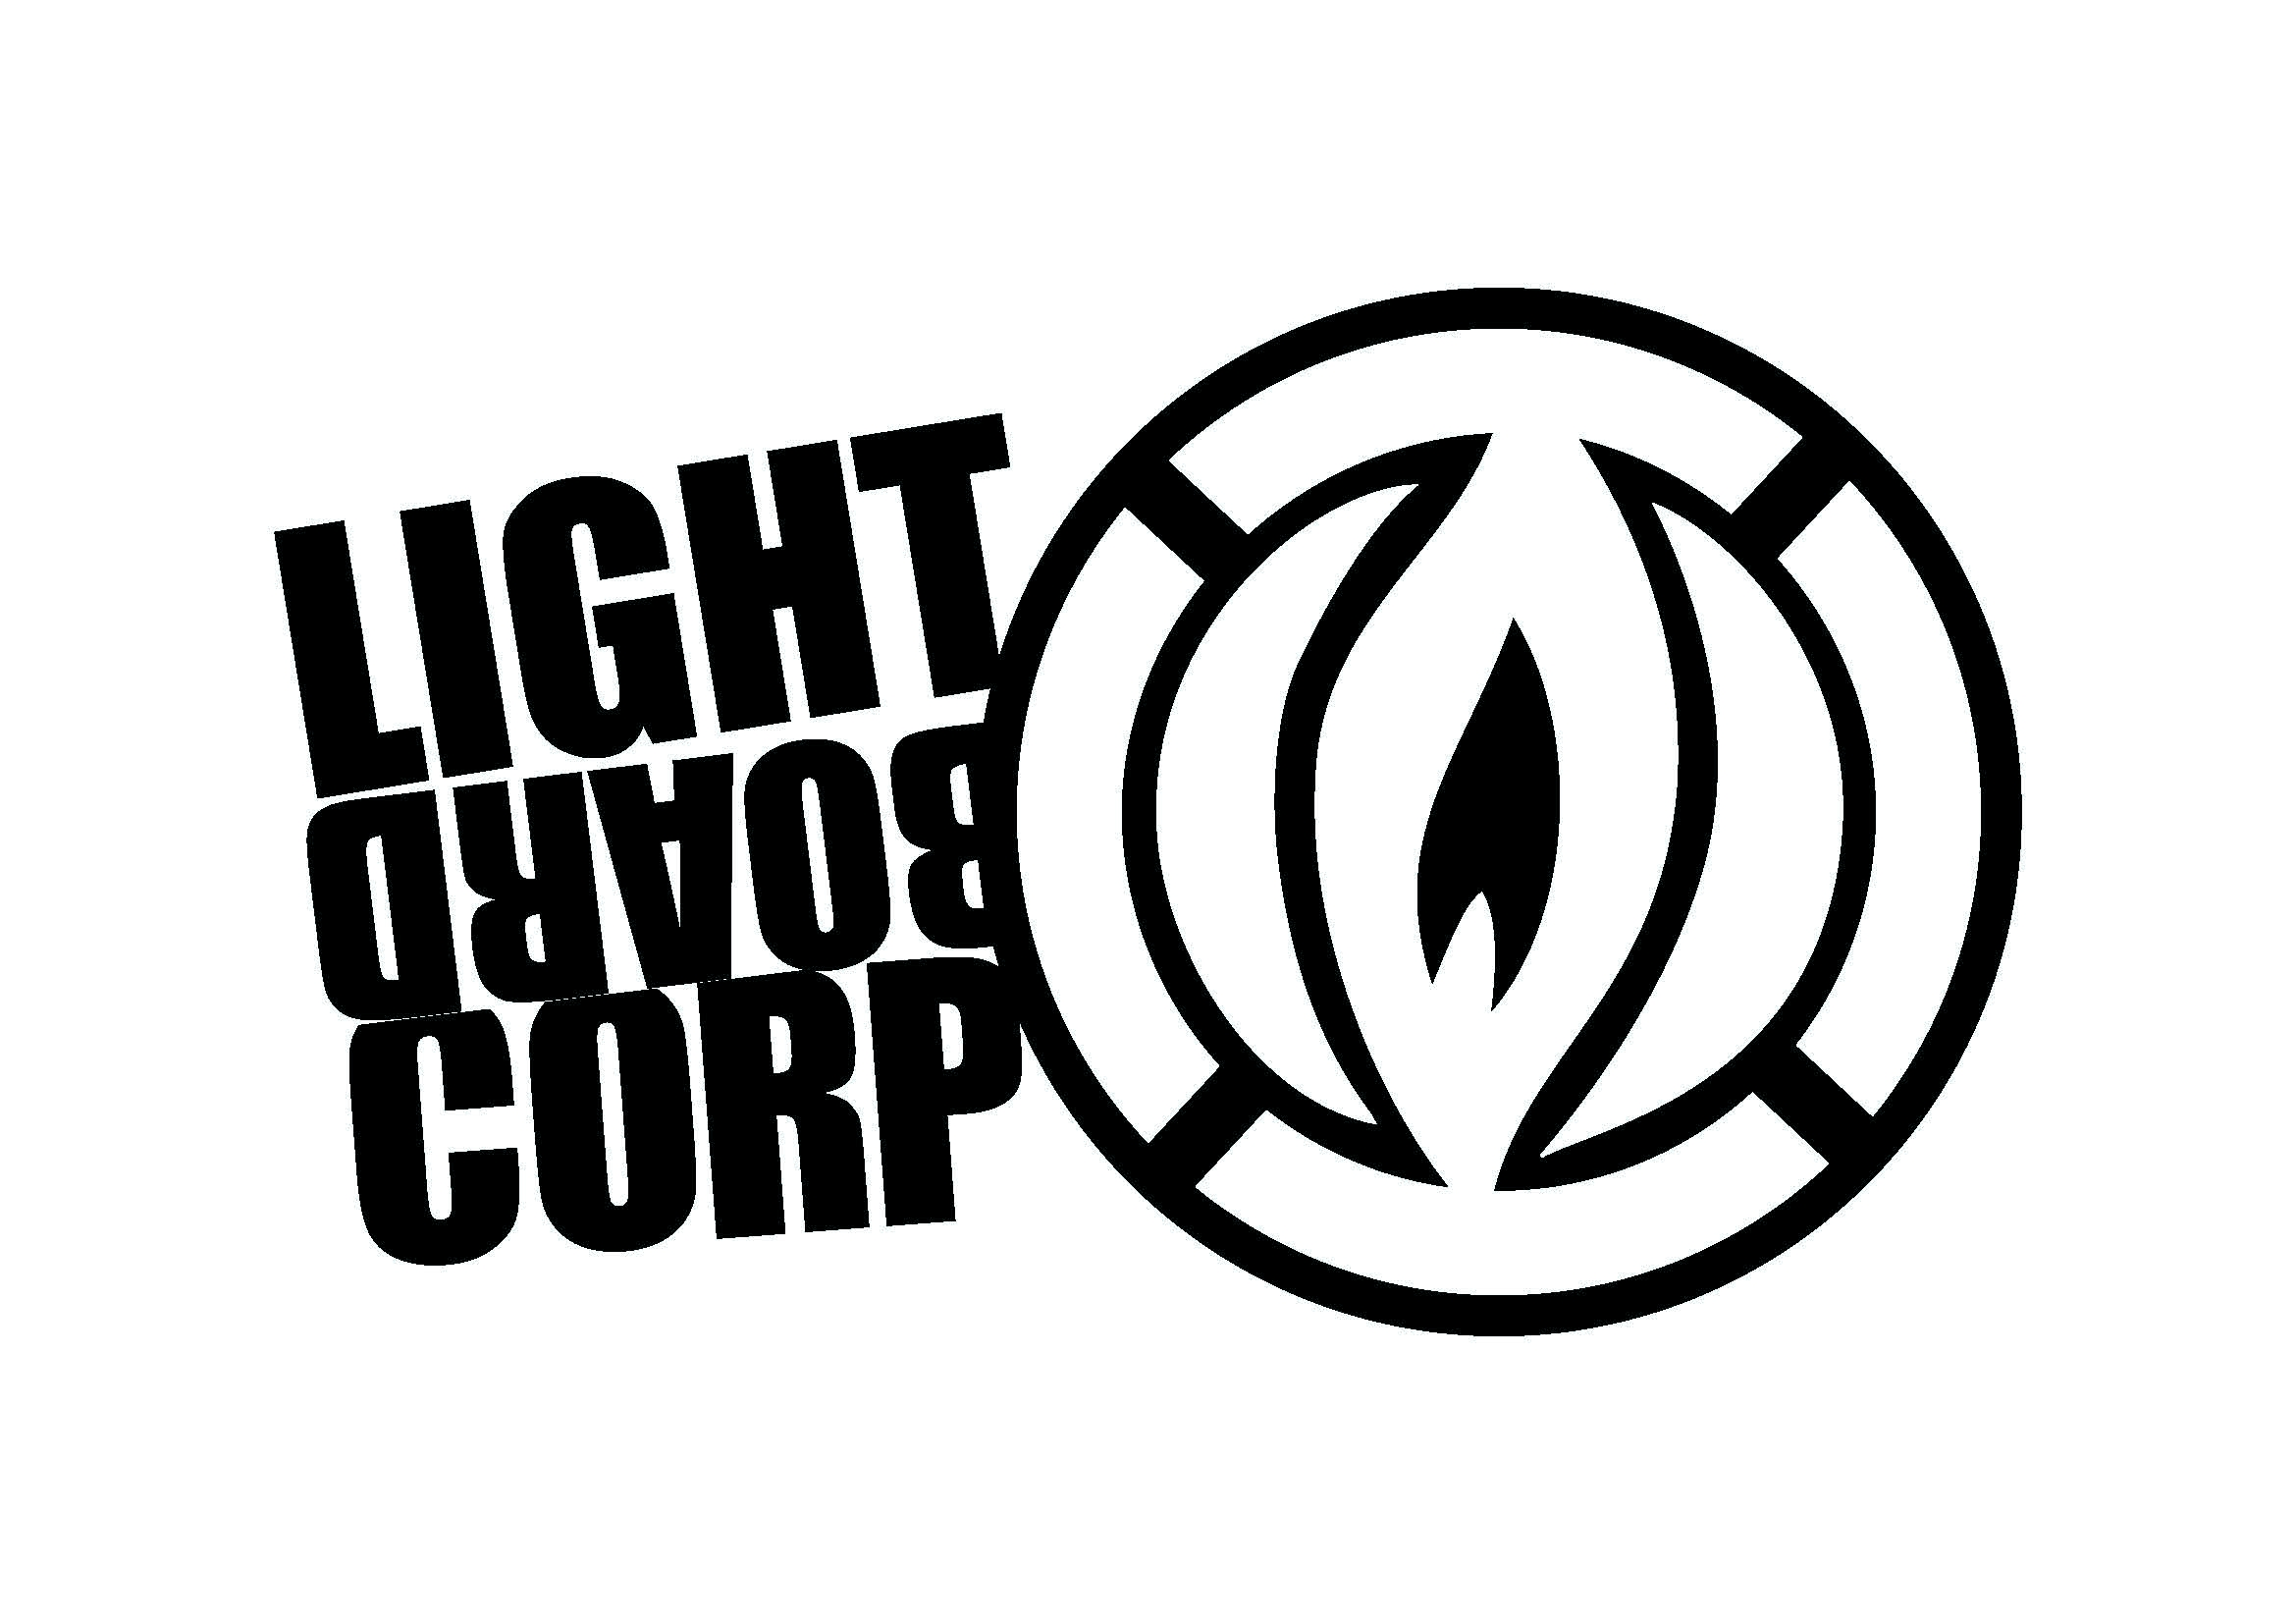 Lightboard Corp SUP logo